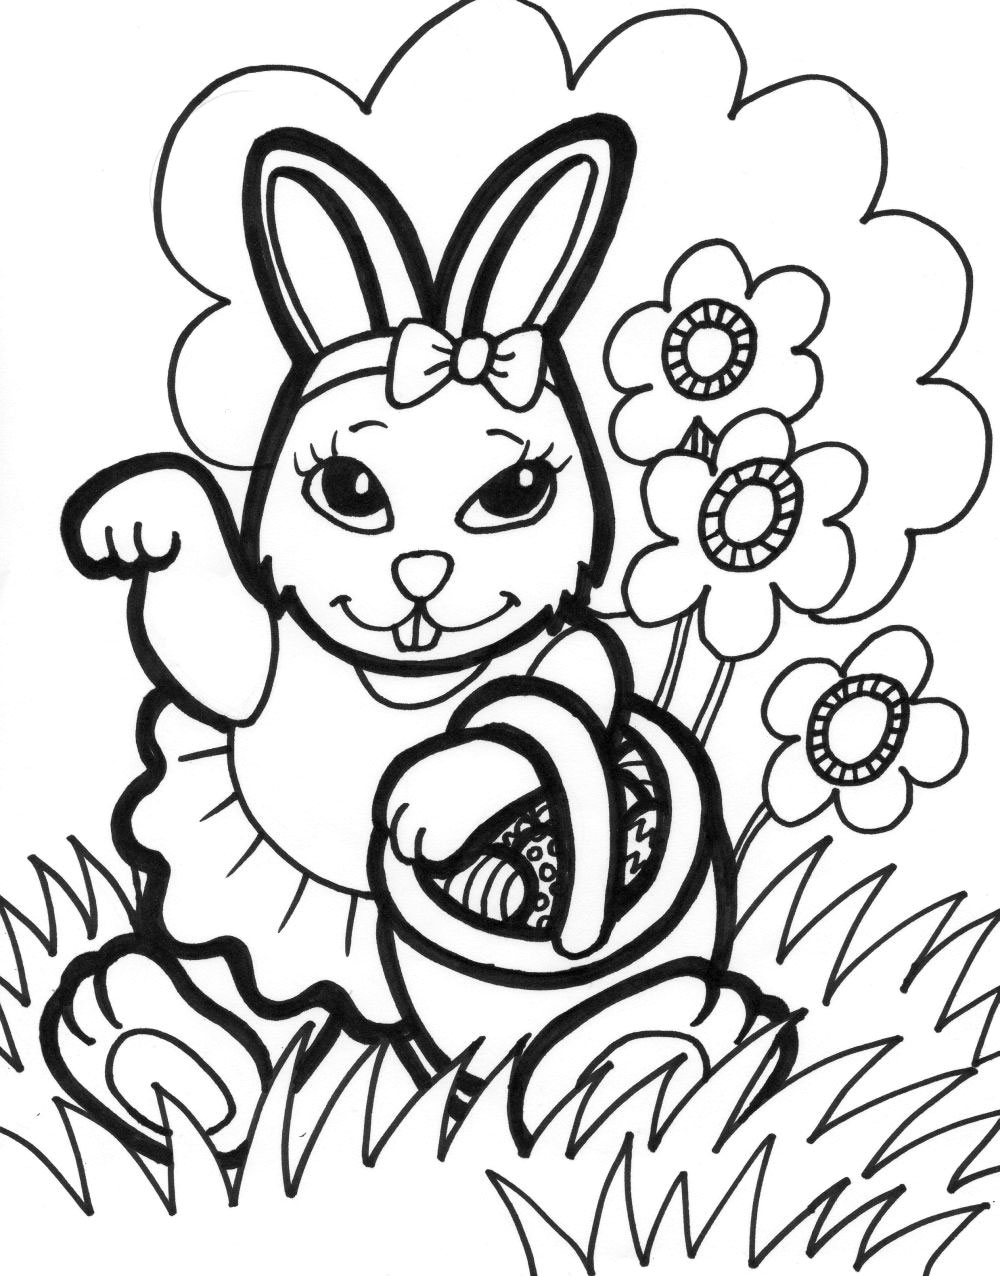 Bunny Coloring Sheets Free Printable 1110 Gallery Of Easter Coloring14 Gallery